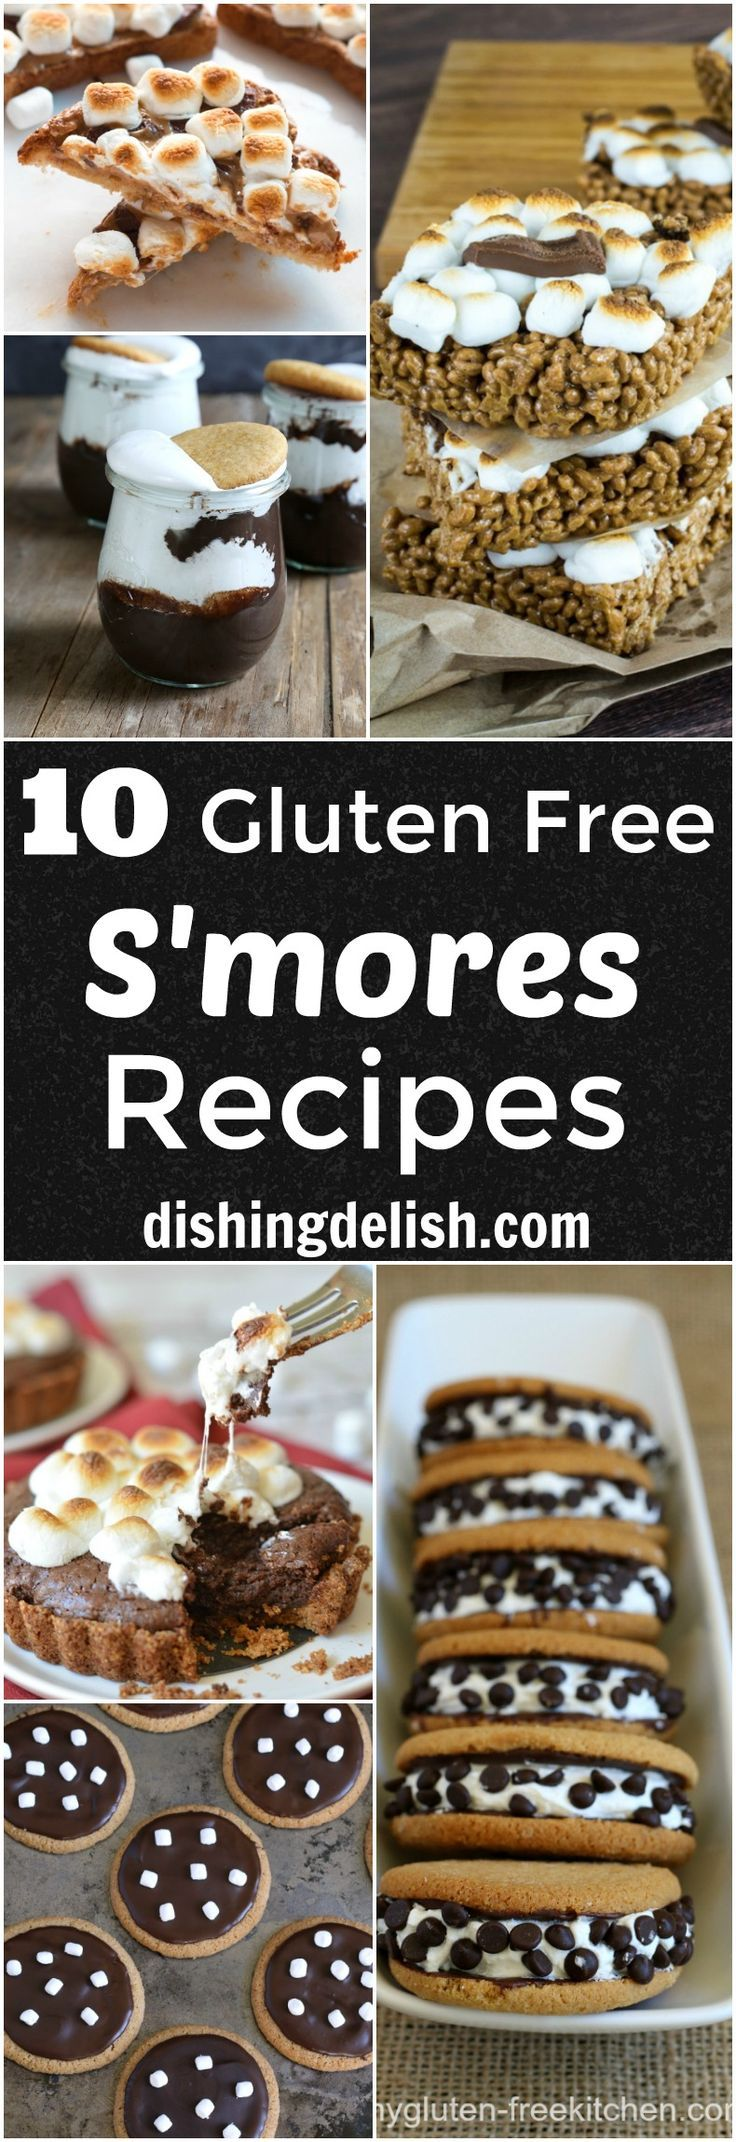 Here's a list of the top 10 Gluten Free S'mores Recipes that are perfect for your next camping trip!